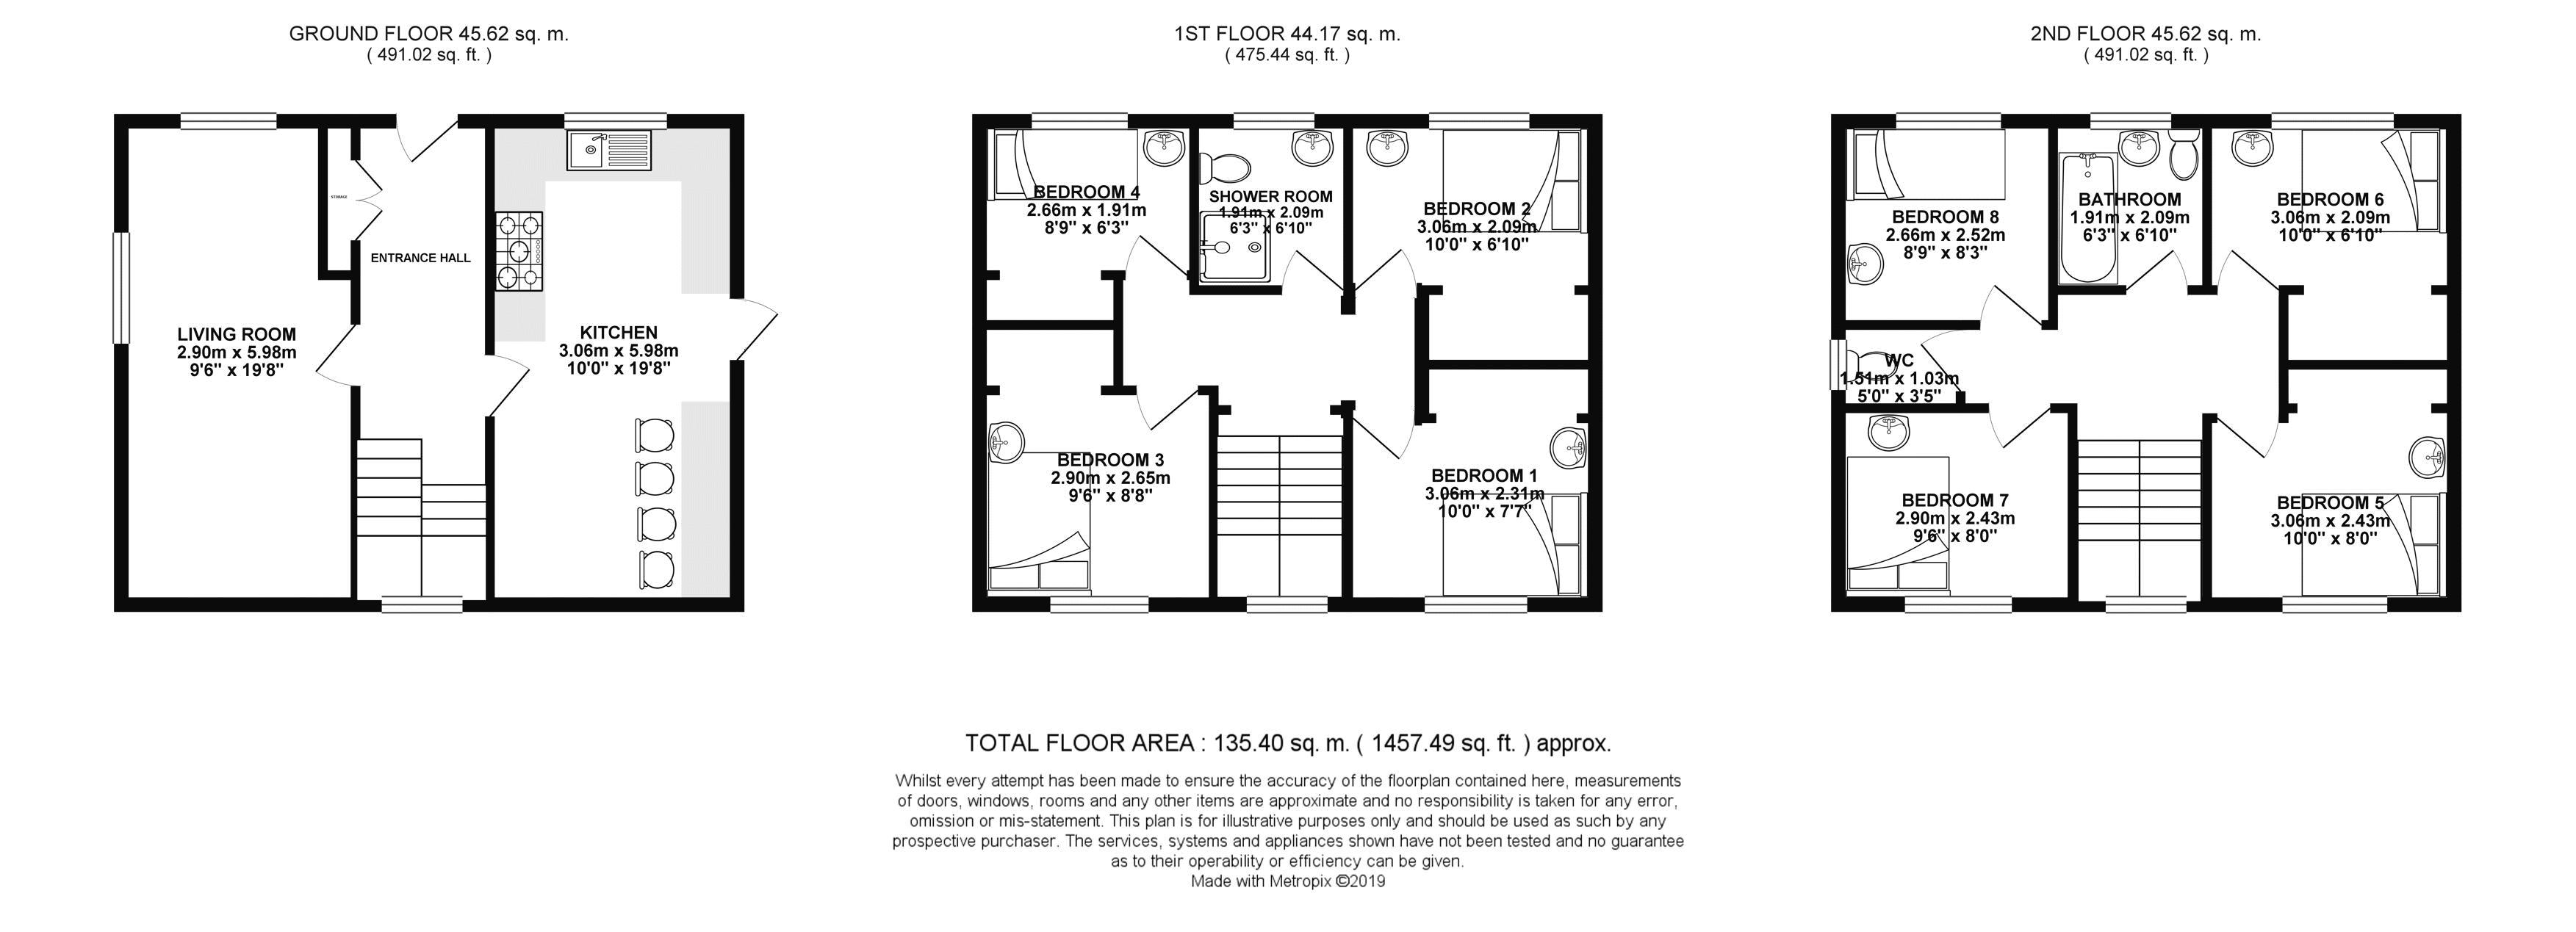 Floor plans for Auckland Drive, Brighton property for sale in Bevendean, Brighton by Coapt